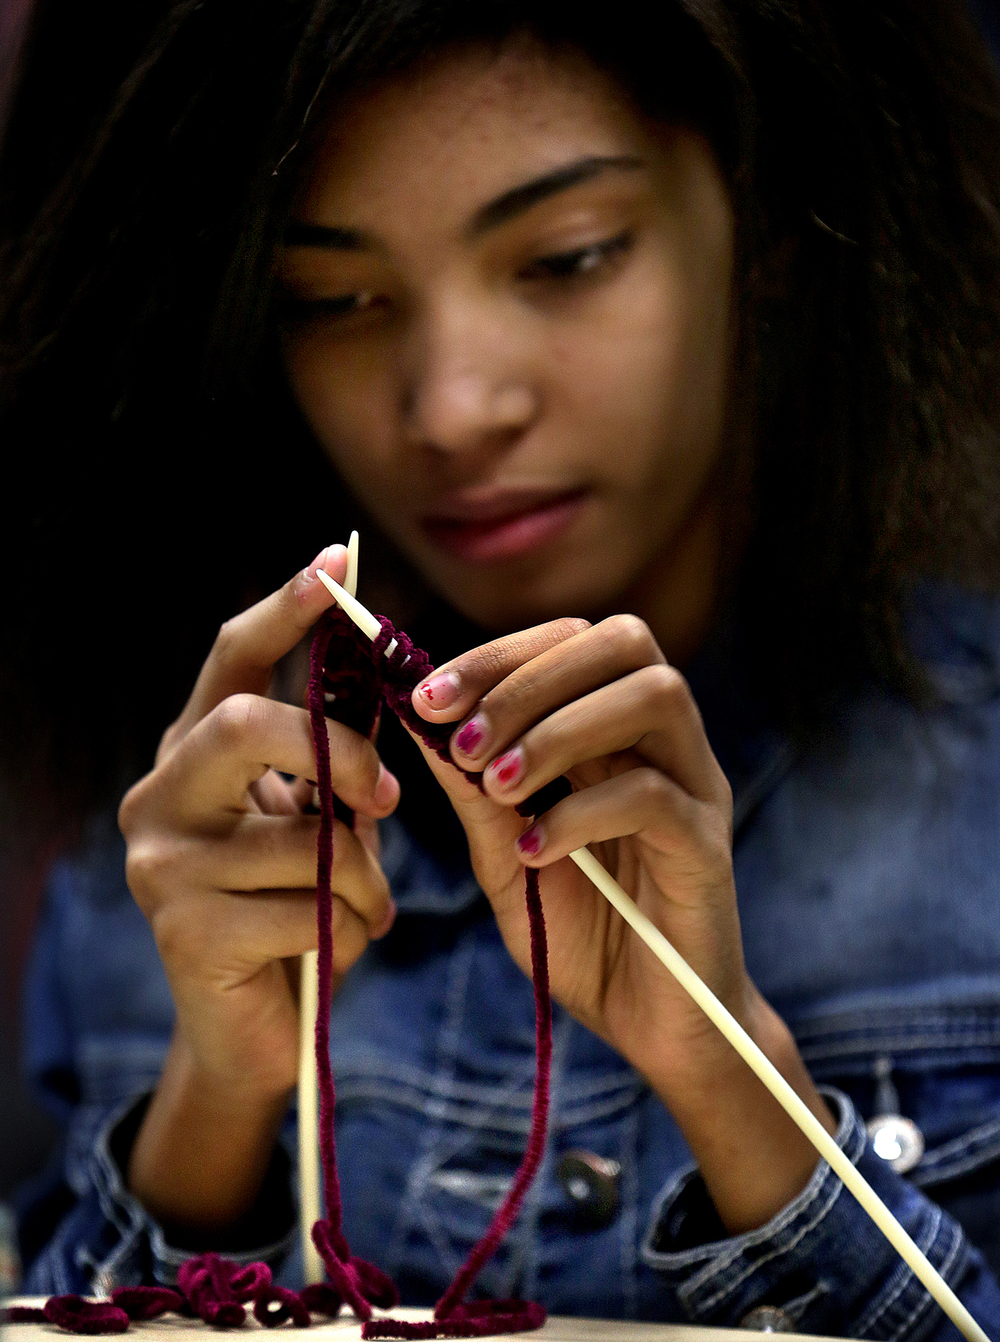 Seventh grade student Rinoa Chance, 12, works on her knitting skills at the school on Tuesday, Feb. 17, 2015. Springfield's Lincoln Magnet School Knitting and Crocheting club meets every Tuesday after school.  David Spencer/The State Journal-Register